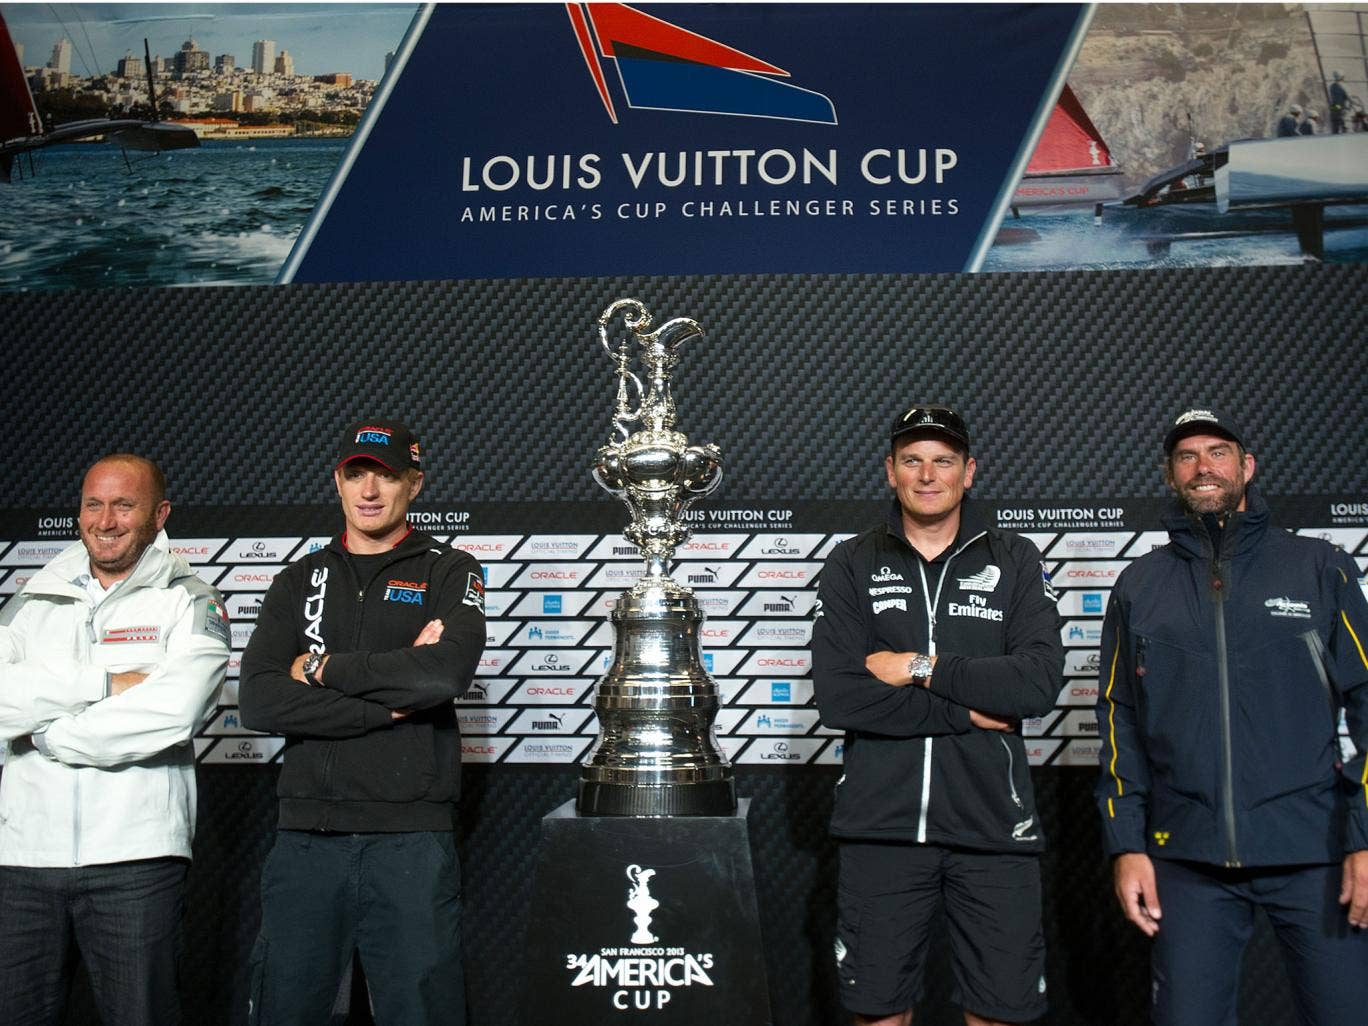 Skippers pose with the America's Cup trophy. From left to right are Luna Rossa Challenge's Max Sirena, Team Oracle USA's Jimmy Spithill, Emirates Team New Zealand's Dean Barker and Artemis Racing's Iain Percy.